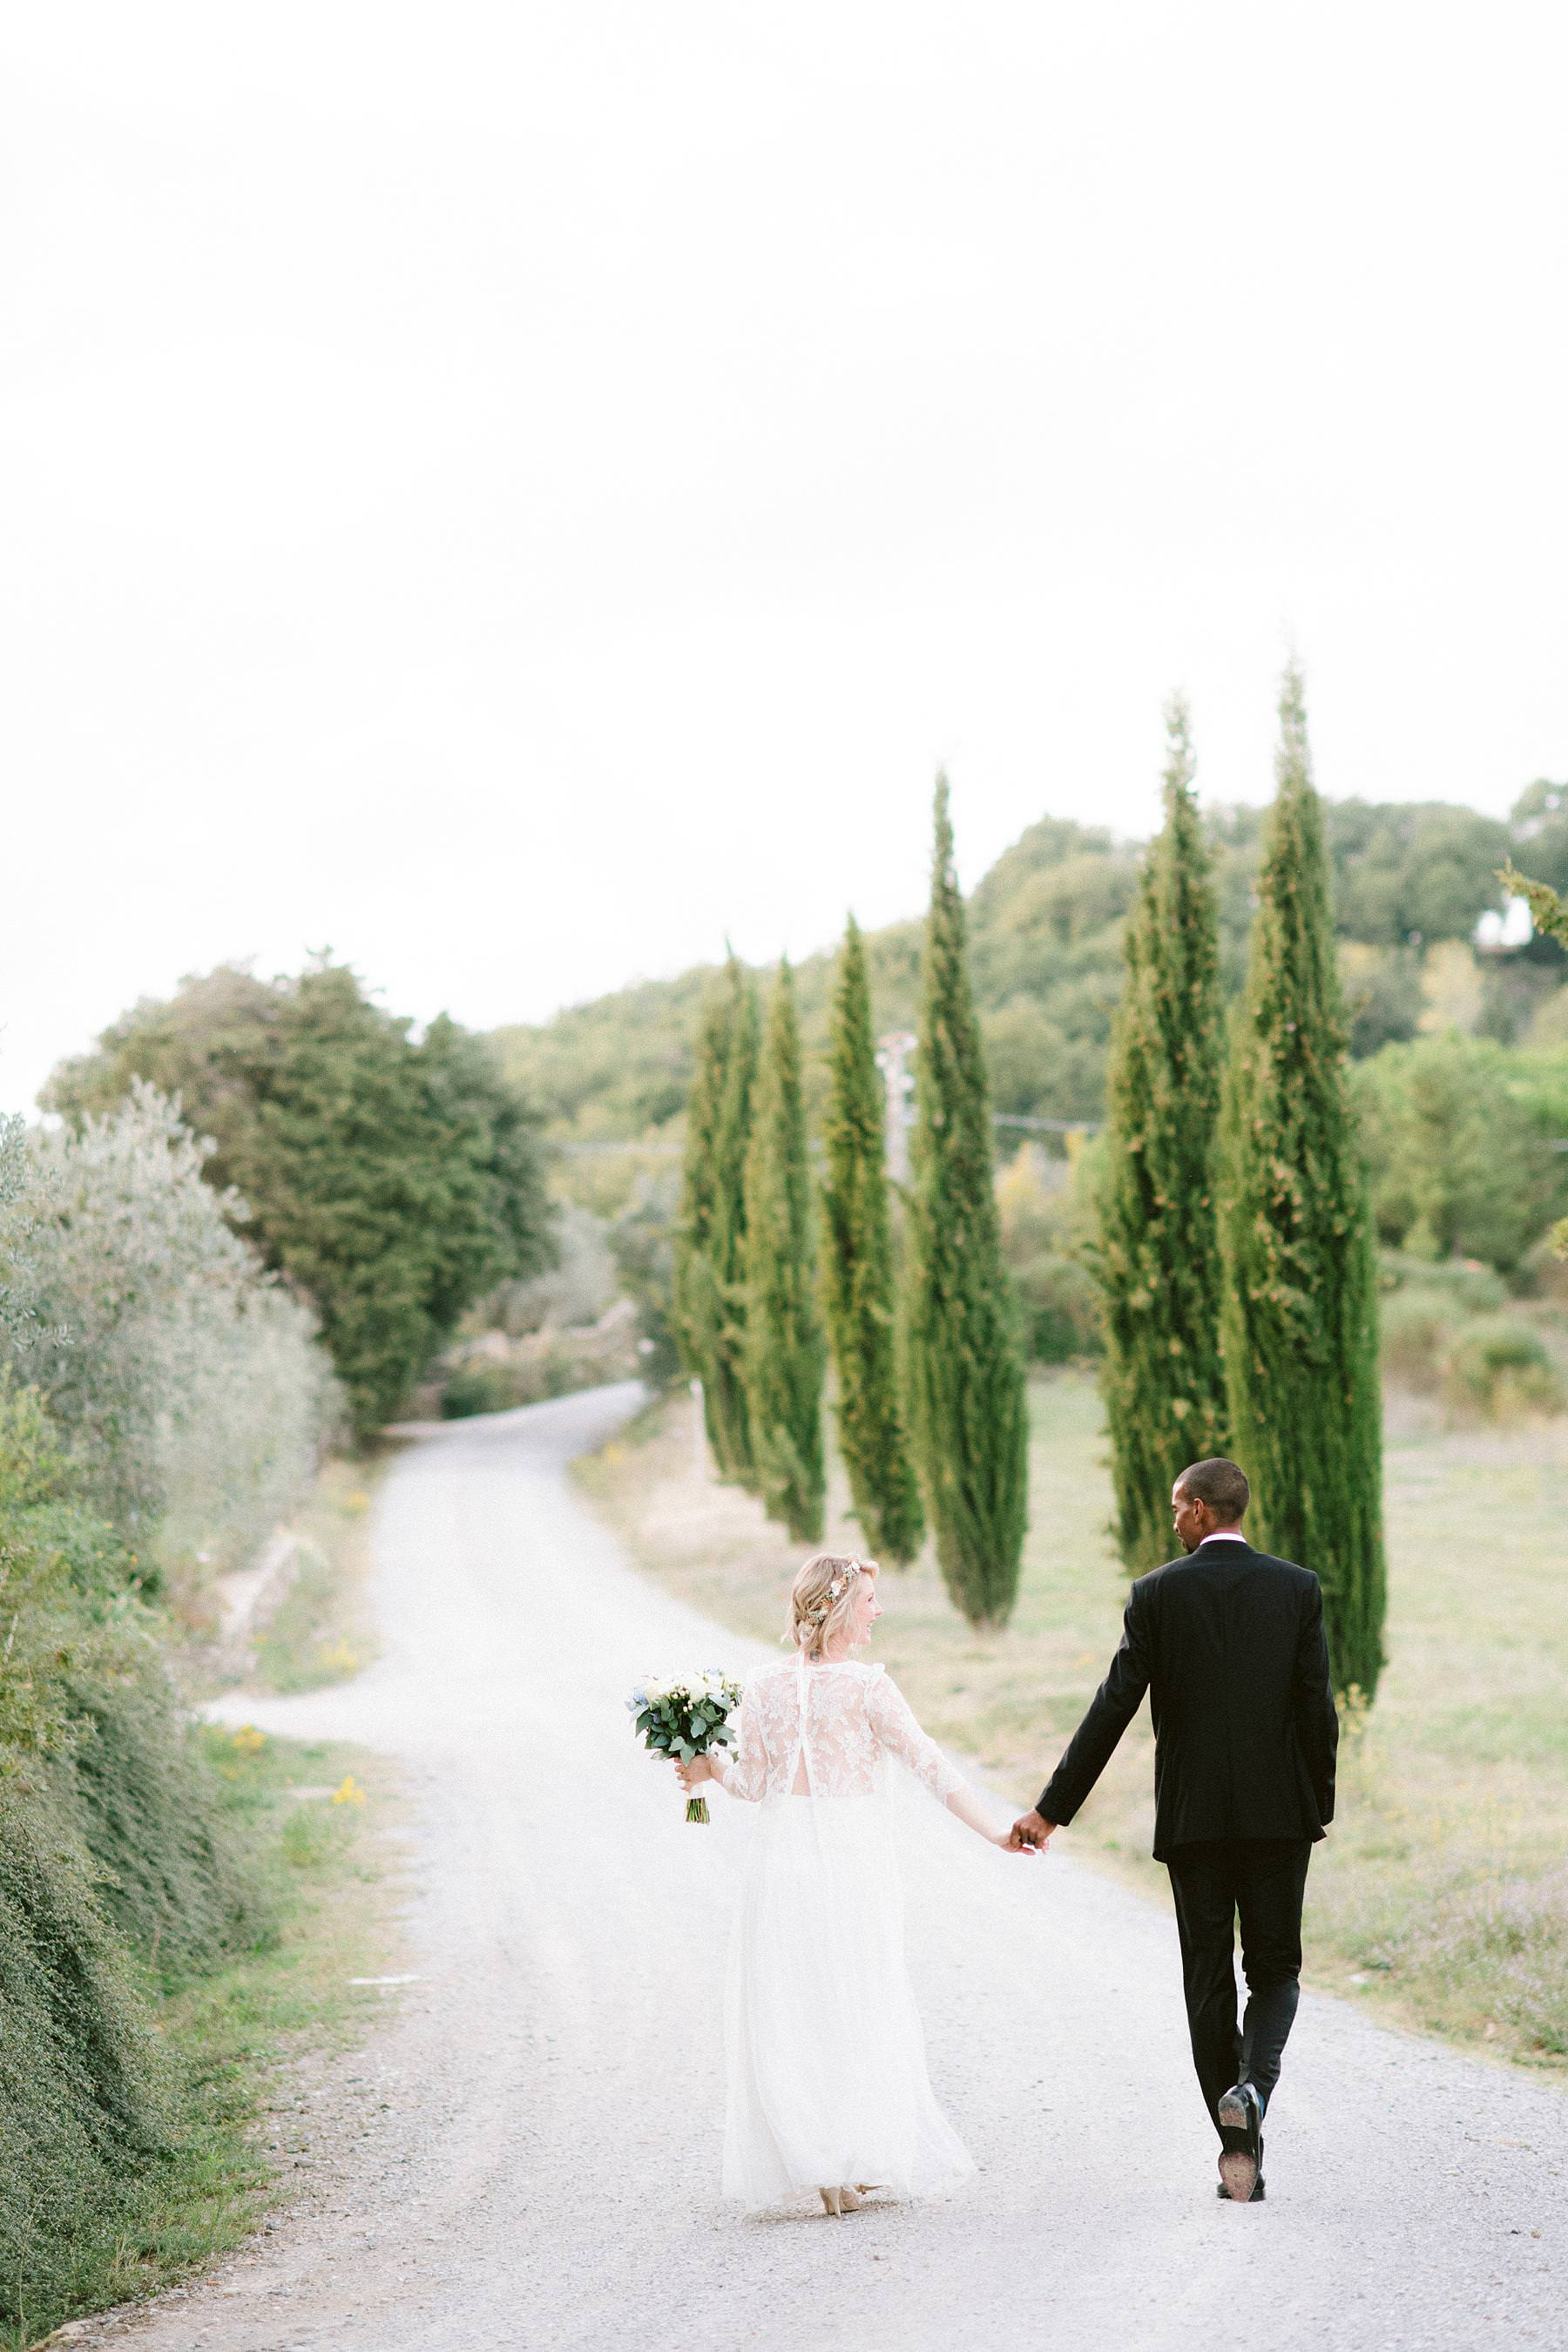 Bride Isabella in her Laure De Sagazan dress and groom Tanaka in his Hugo Boss suit walk around historic residence of Montelucci Country Resort, framed by the picturesque cypress lane and vineyard. Destination wedding in the countryside of Tuscany between Chianti and Valdarno